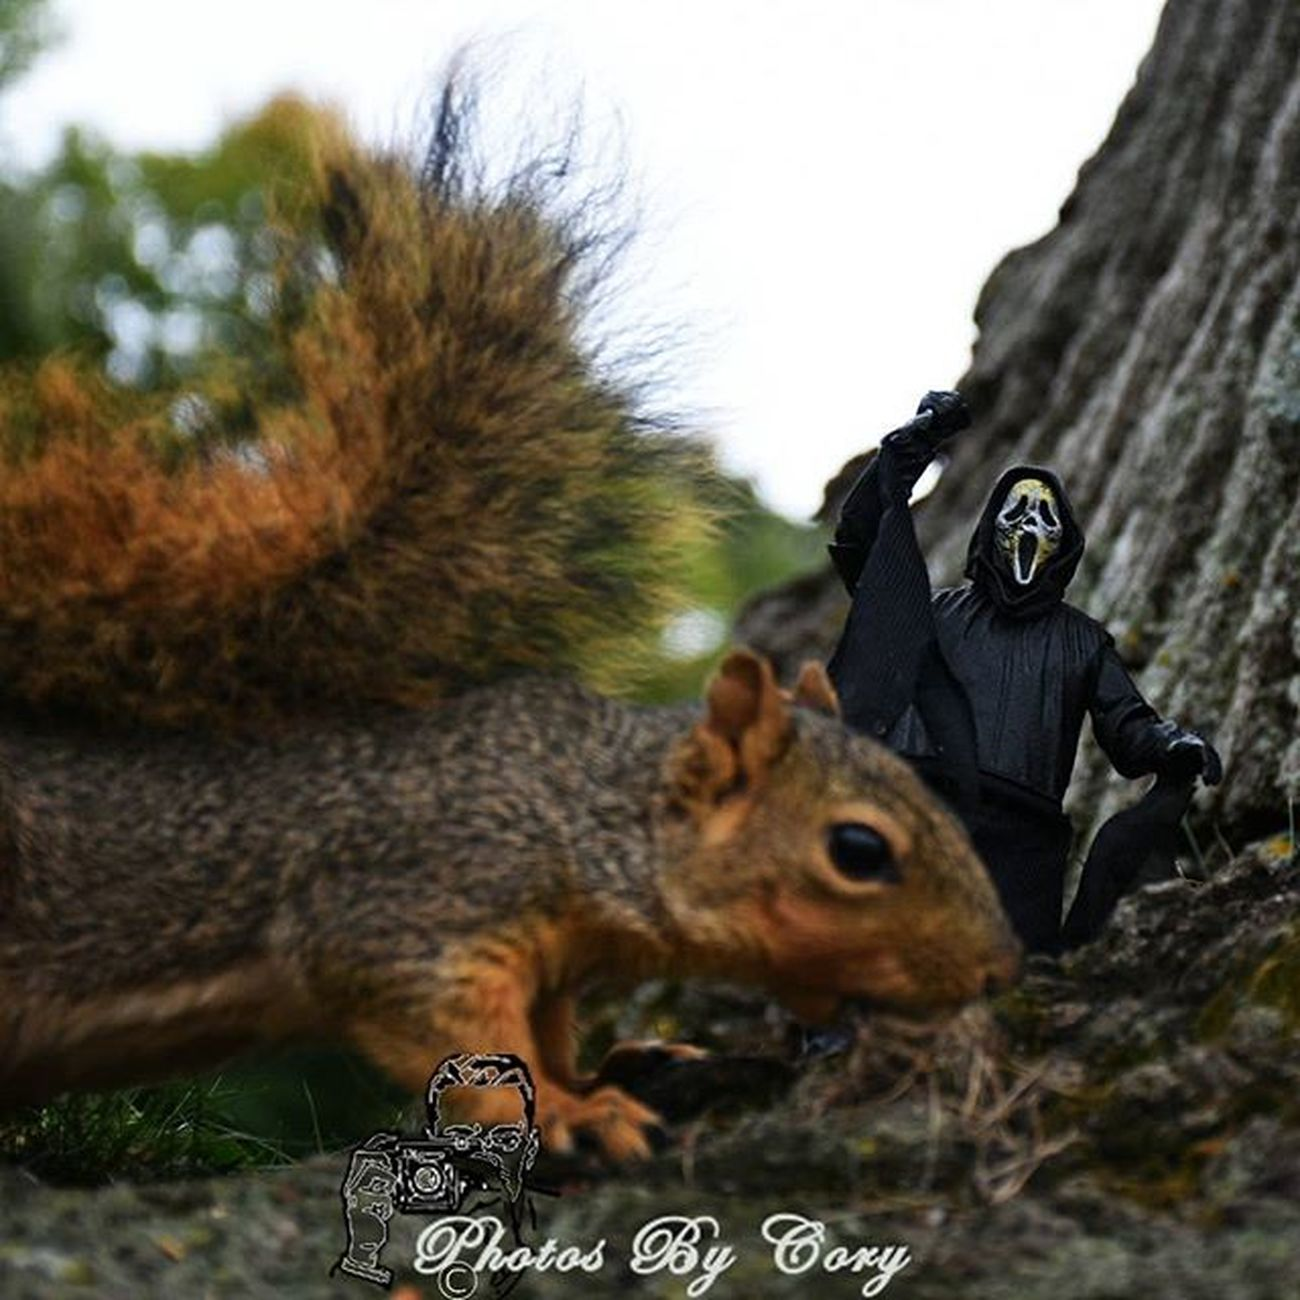 Always when they least expect it! _tyton_loves_the_monsters _tyton_ Ghostface Funwiththesquirrels Wildlife Animallover Wildlifephotography Wildlifepark Photooftheday Instadaily Instanature Natureshots Natureseeker Natureonly Natures_hub Natures_cuties Animallover Animal_captures Wildlife_perfection Feedback Ata_pickedbypaul